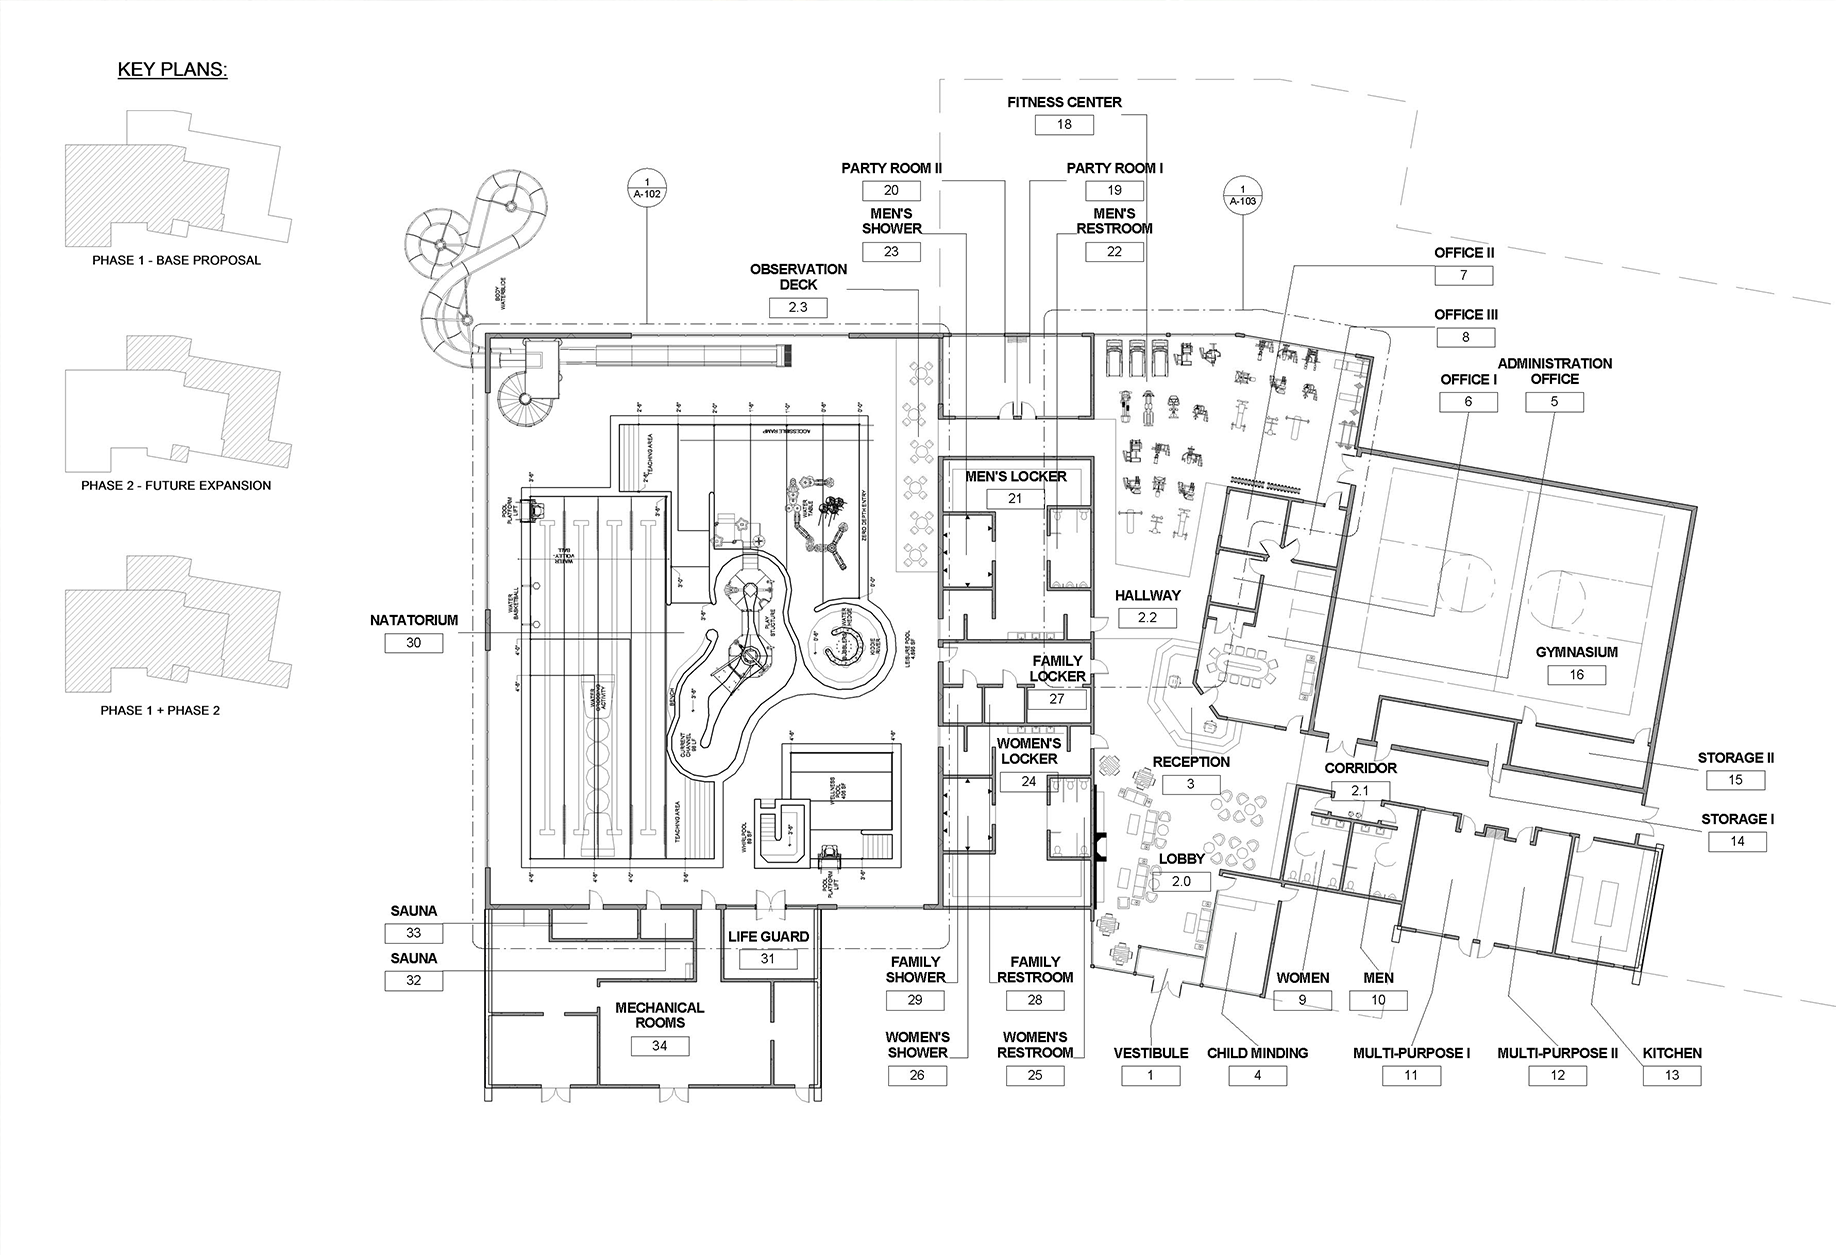 Plan_Airway Heights Recreation Center.png